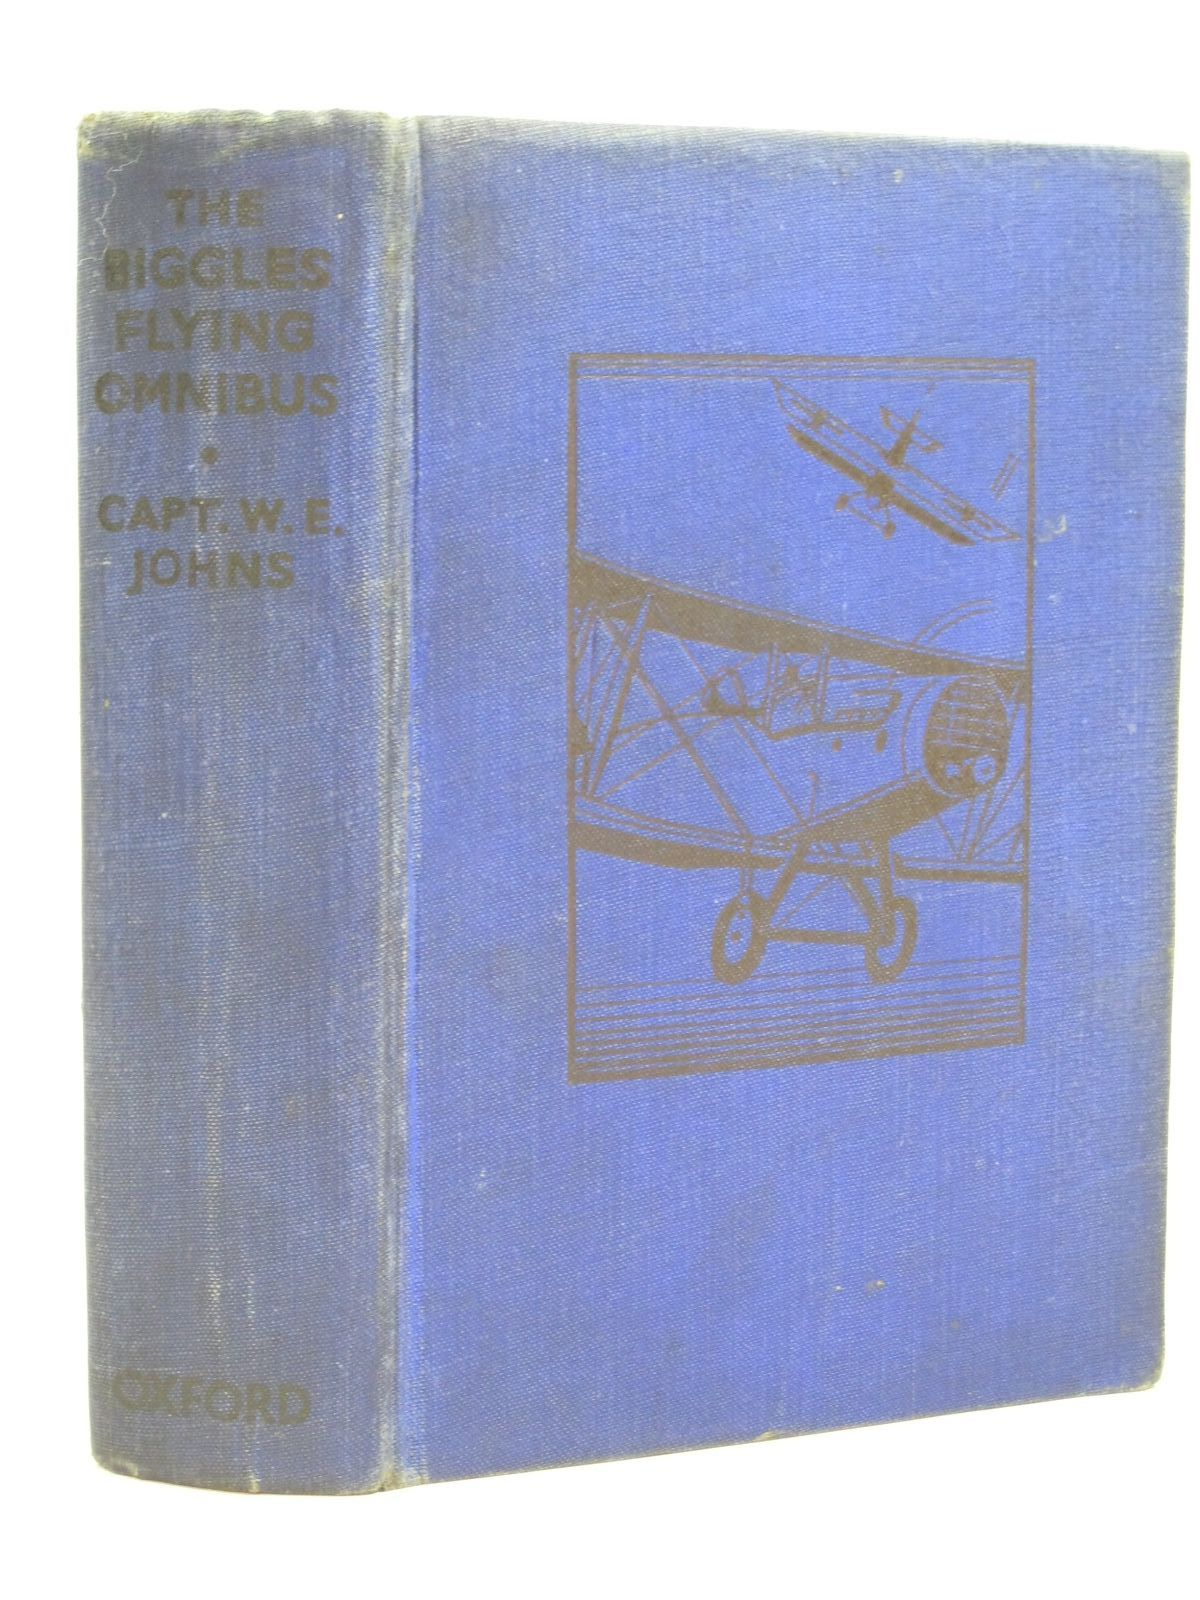 Photo of THE BIGGLES FLYING OMNIBUS written by Johns, W.E. published by Oxford University Press, Humphrey Milford (STOCK CODE: 1405046)  for sale by Stella & Rose's Books